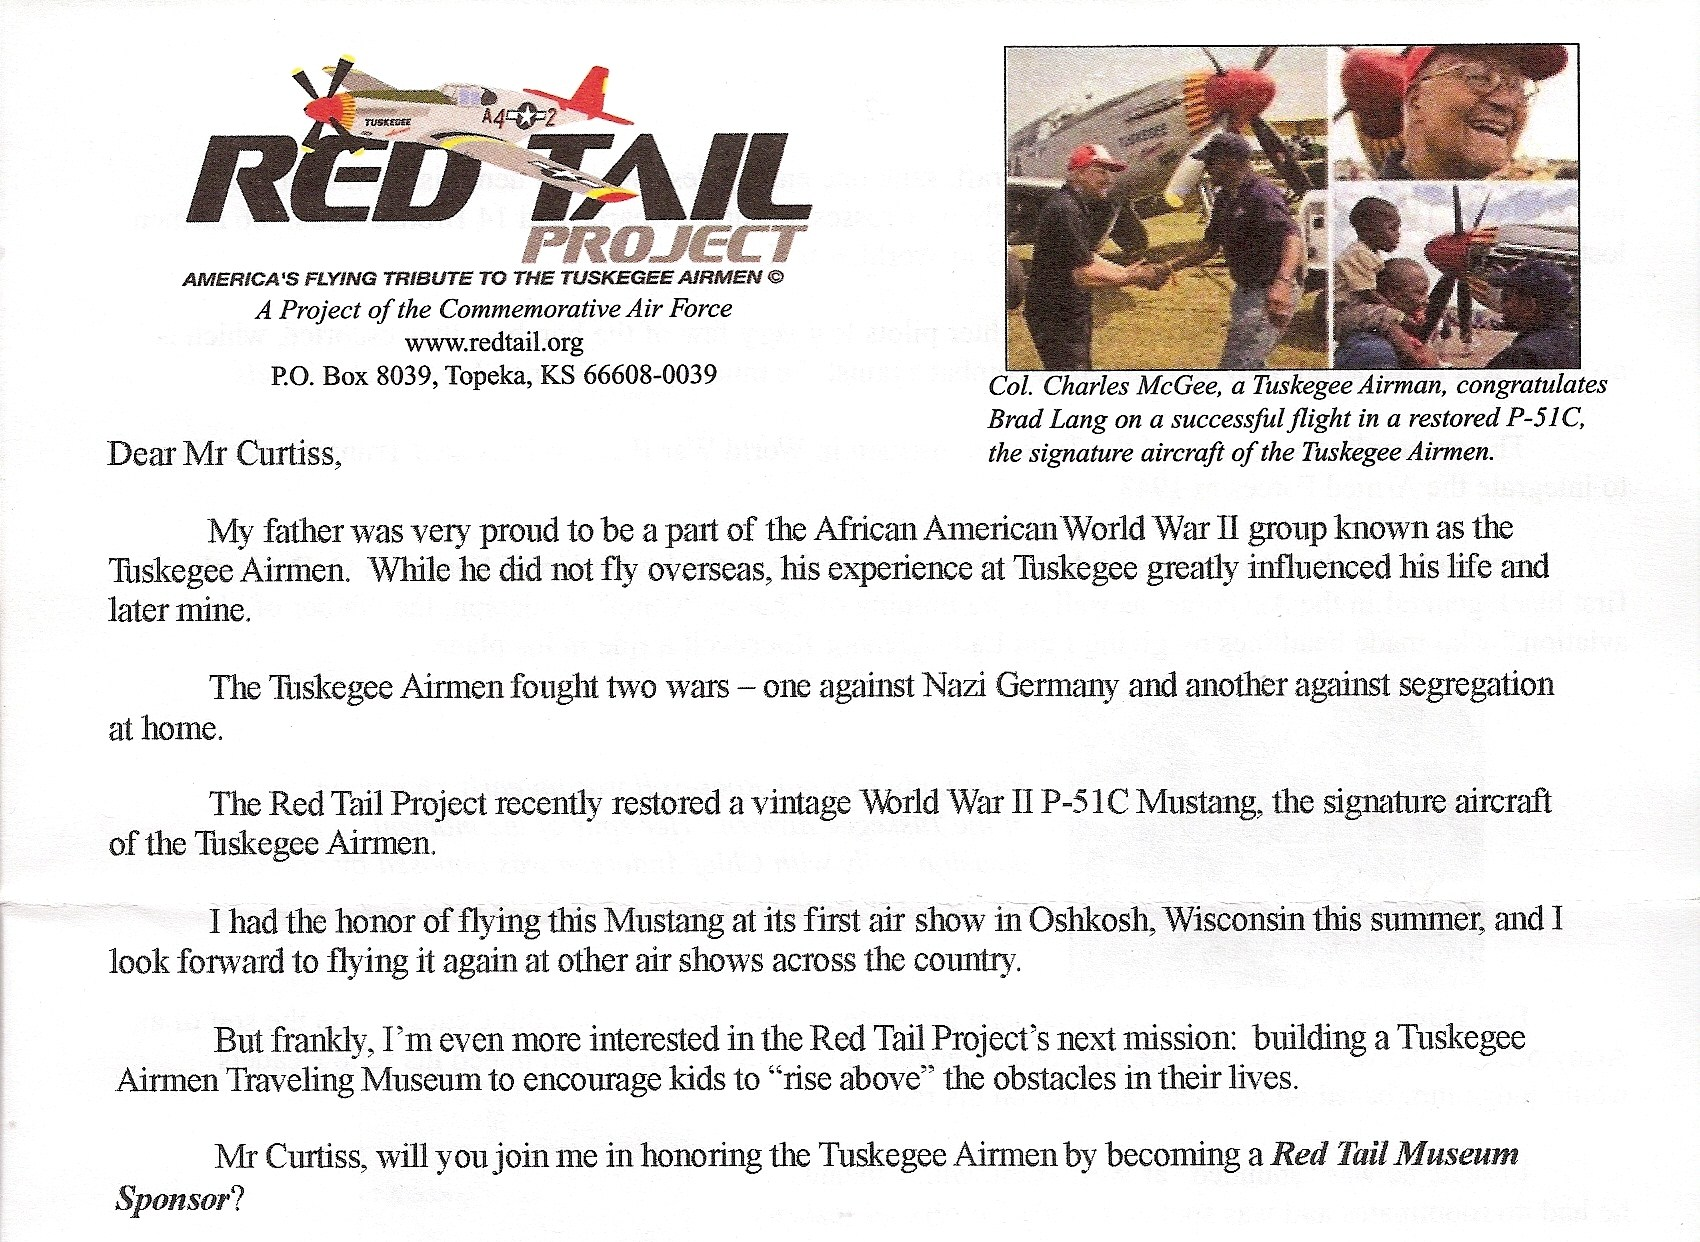 Red Tail Project letter